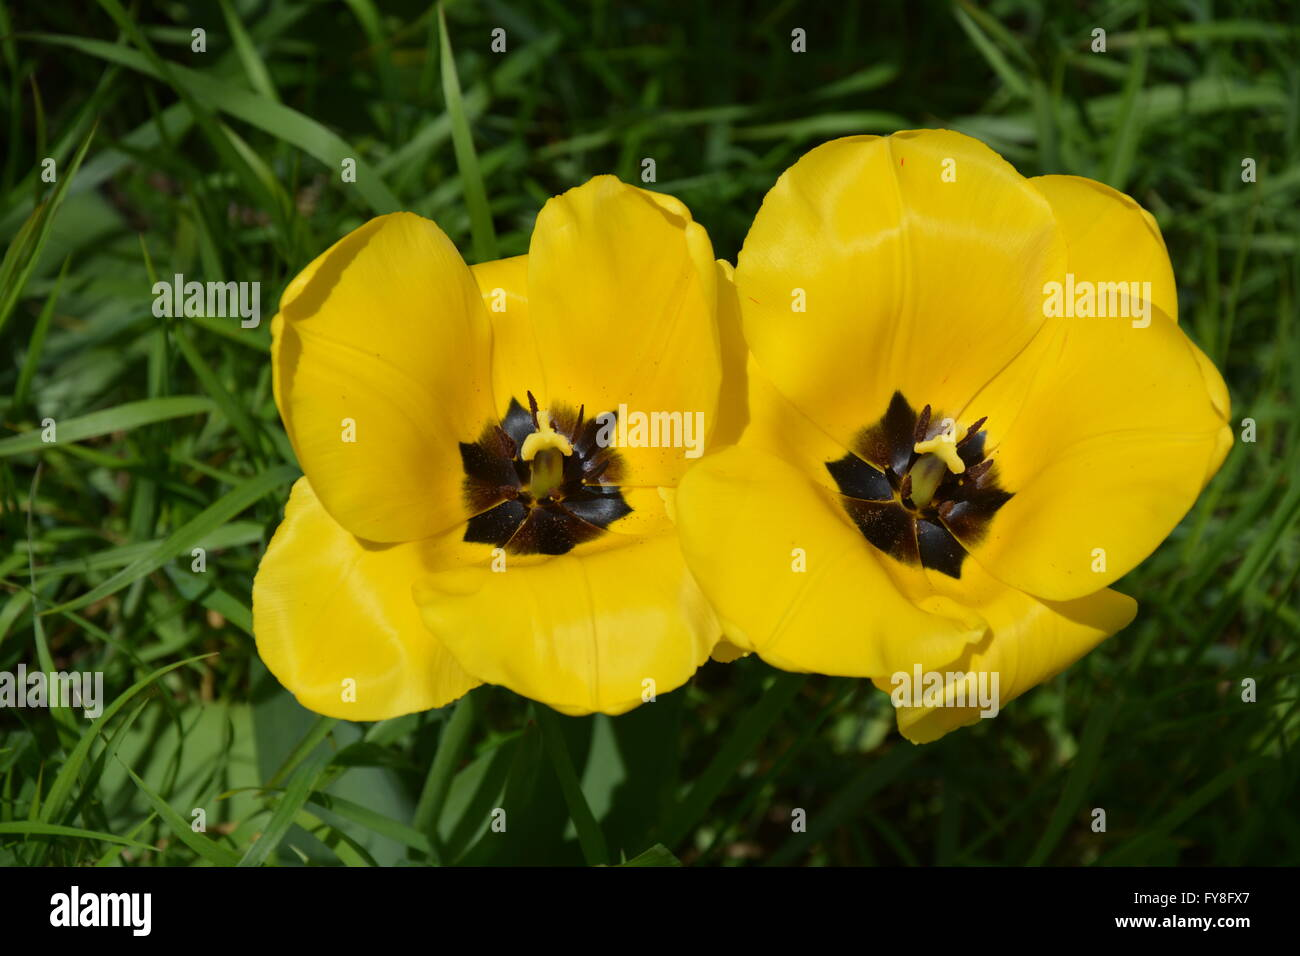 Yellow Flower With Black Center Stock Photos Yellow Flower With